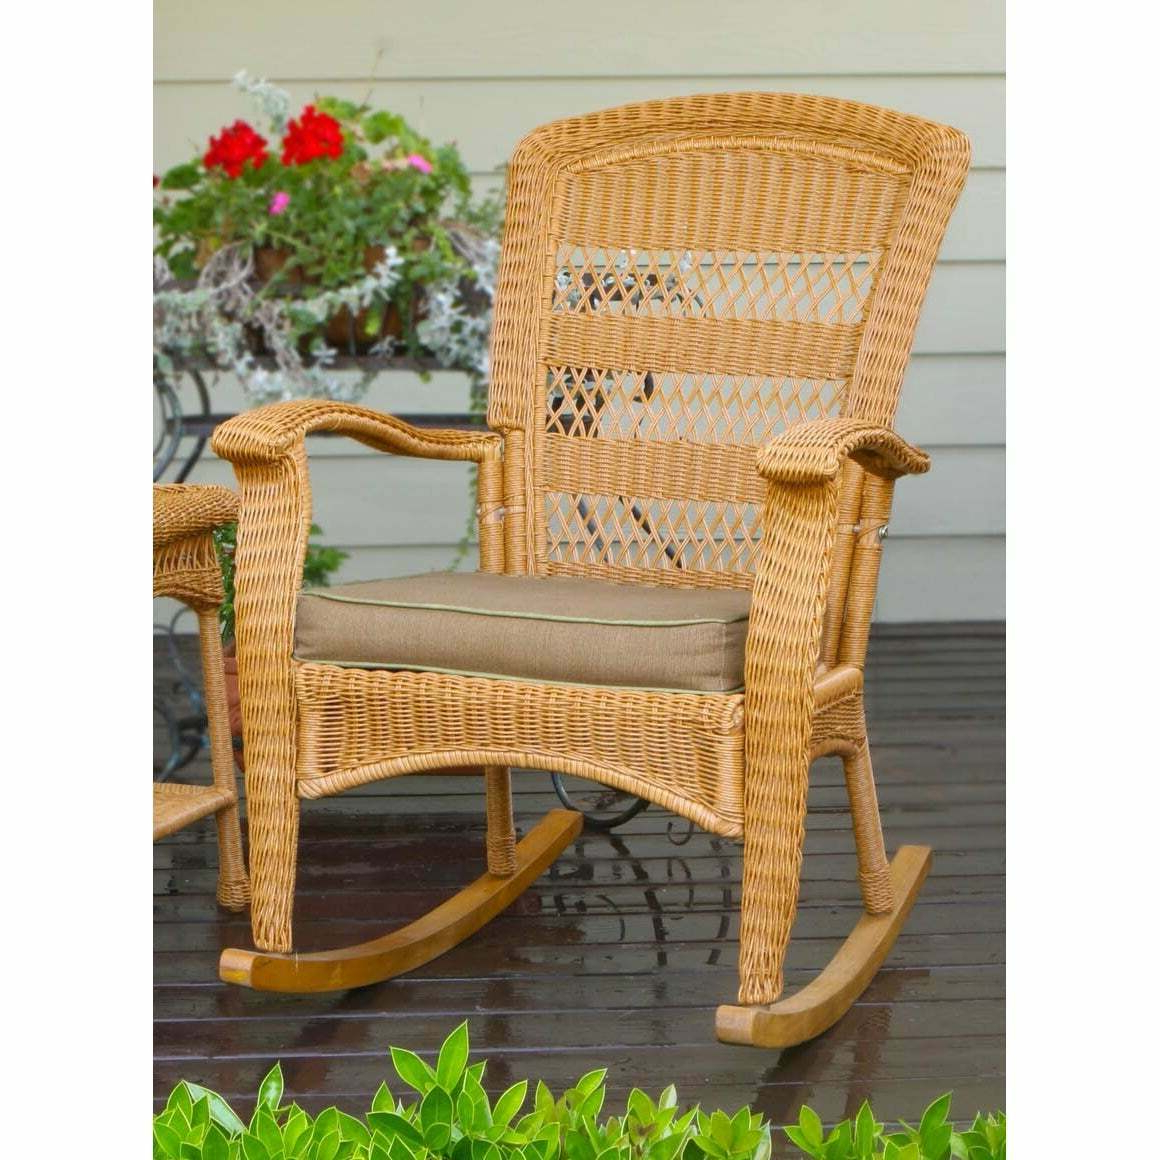 Havenside Home Surfside Outdoor Lounge Chairs Throughout 2020 Havenside Home Surfside Southwest Outdoor Rocking Chair Amber Single (View 23 of 25)